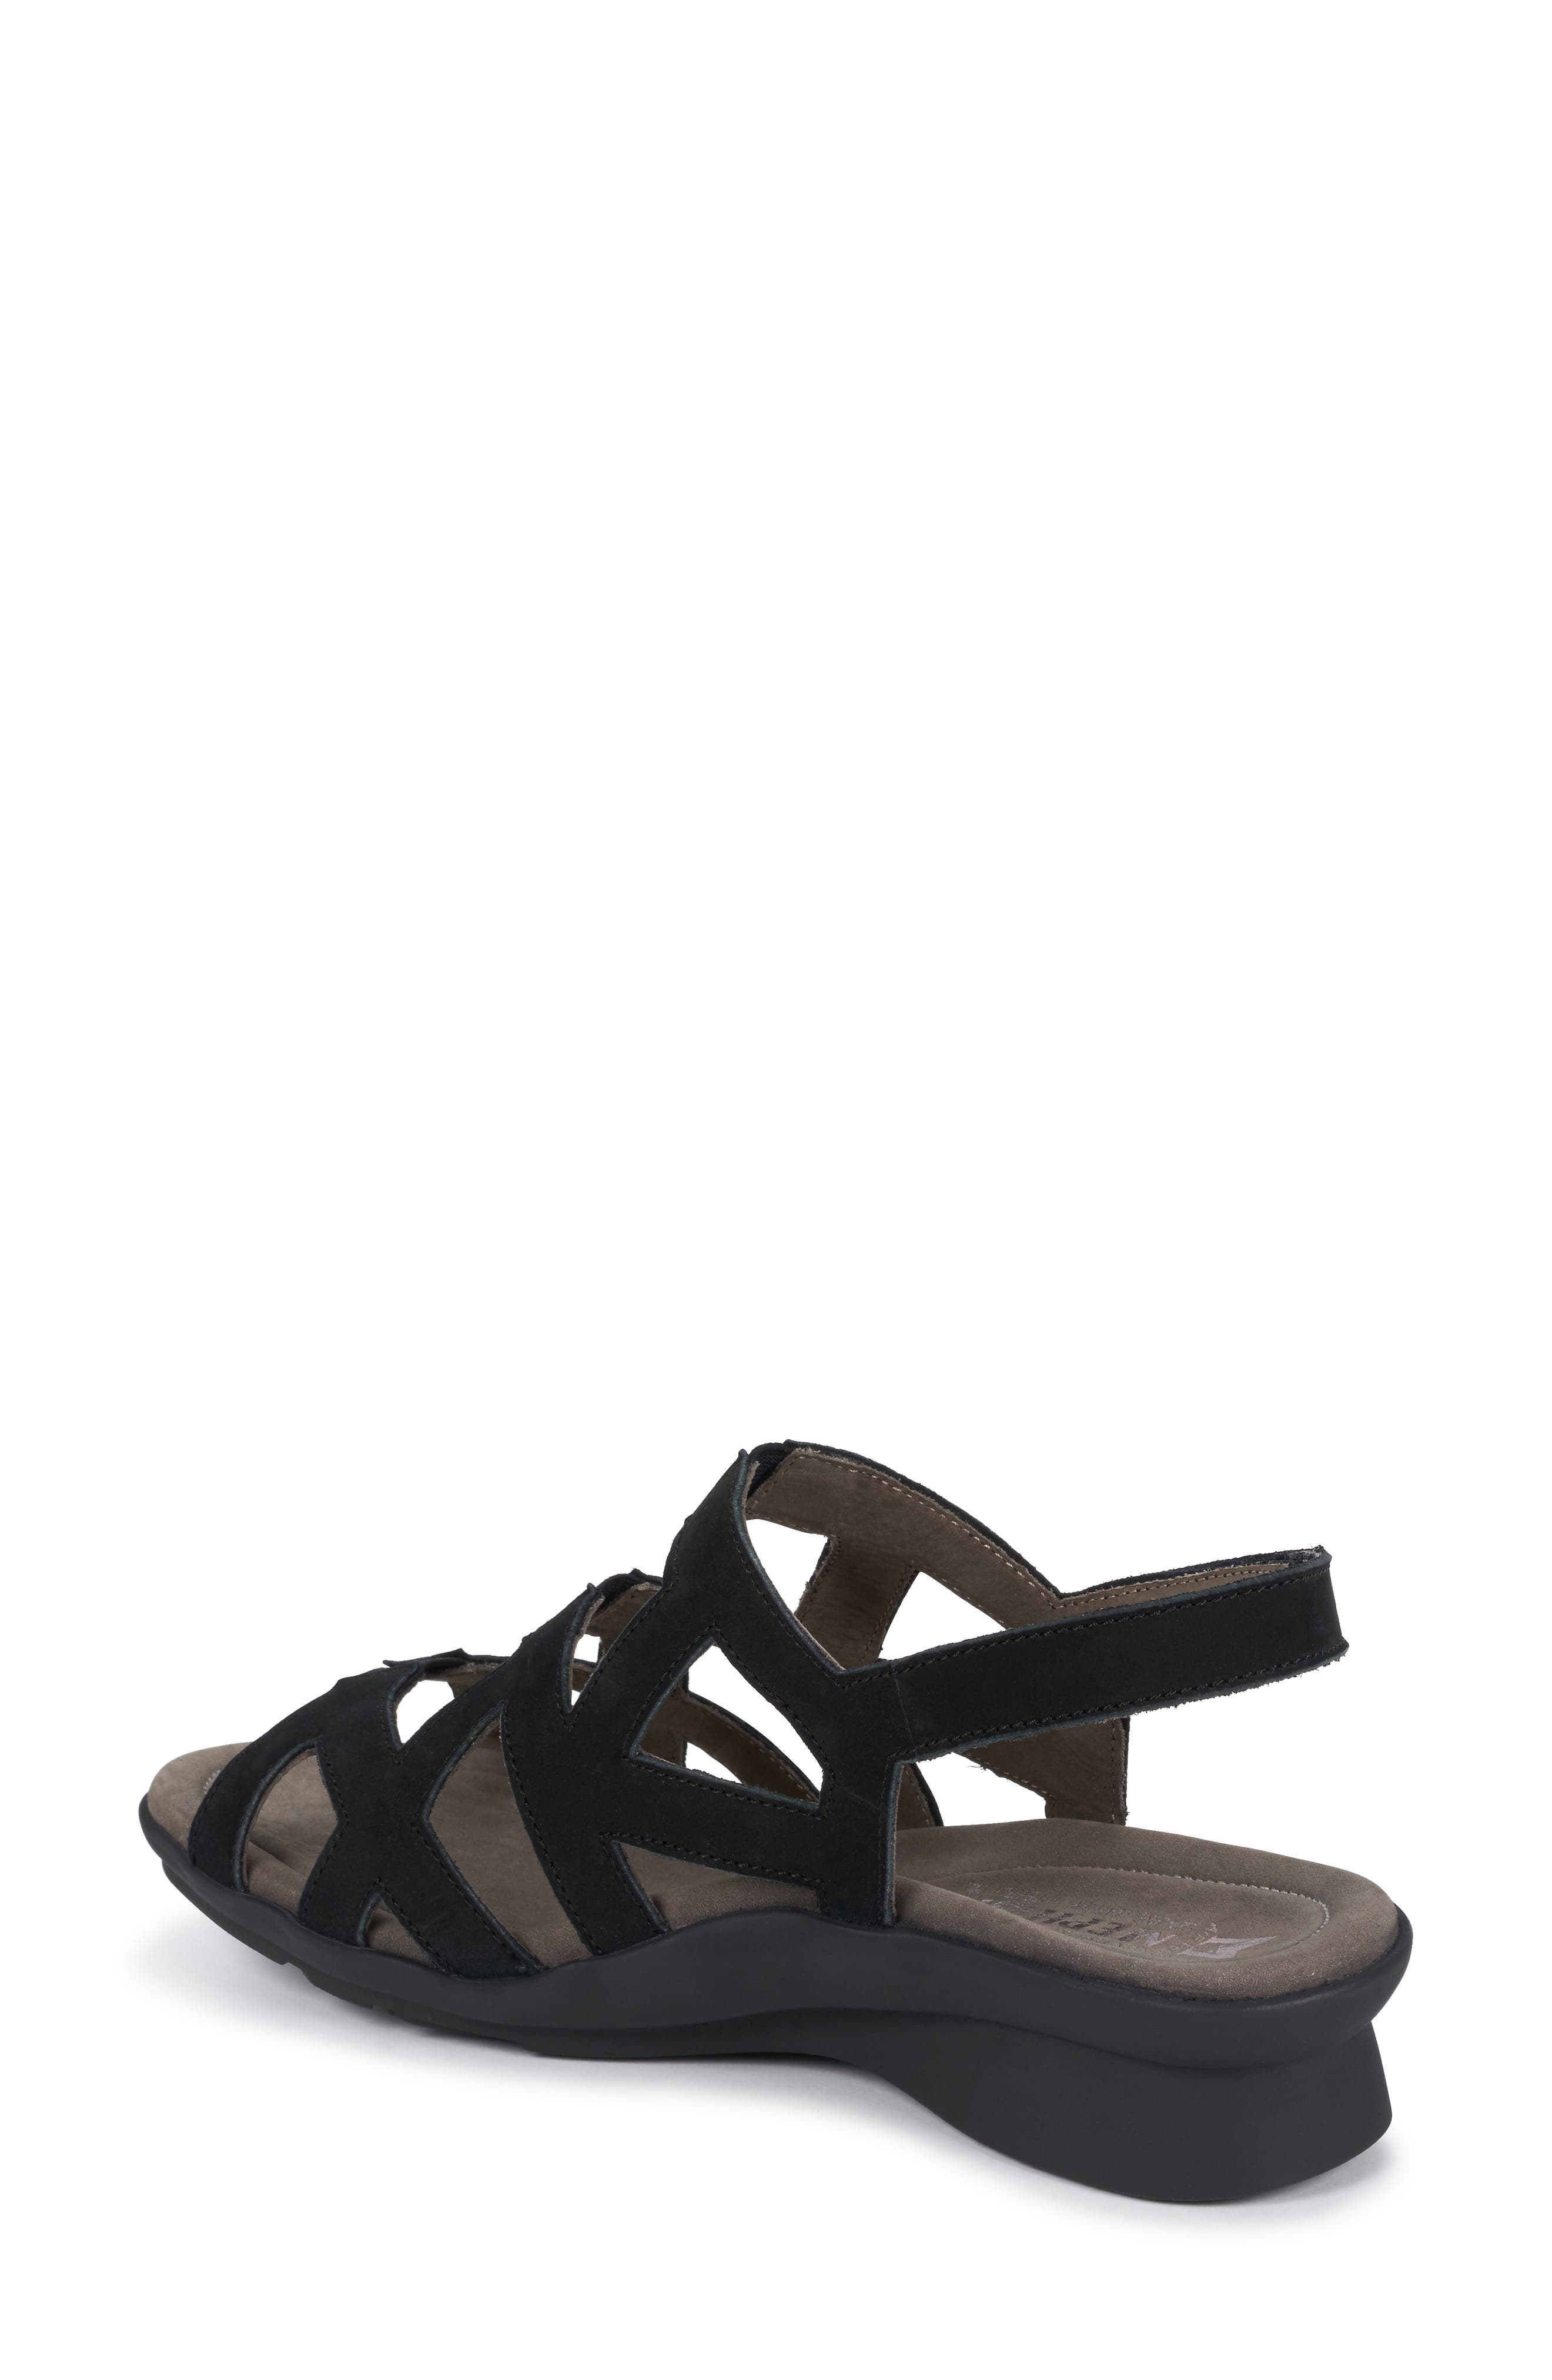 MEPHISTO, Pamela Sandal, Alternate thumbnail 2, color, BLACK NUBUCK